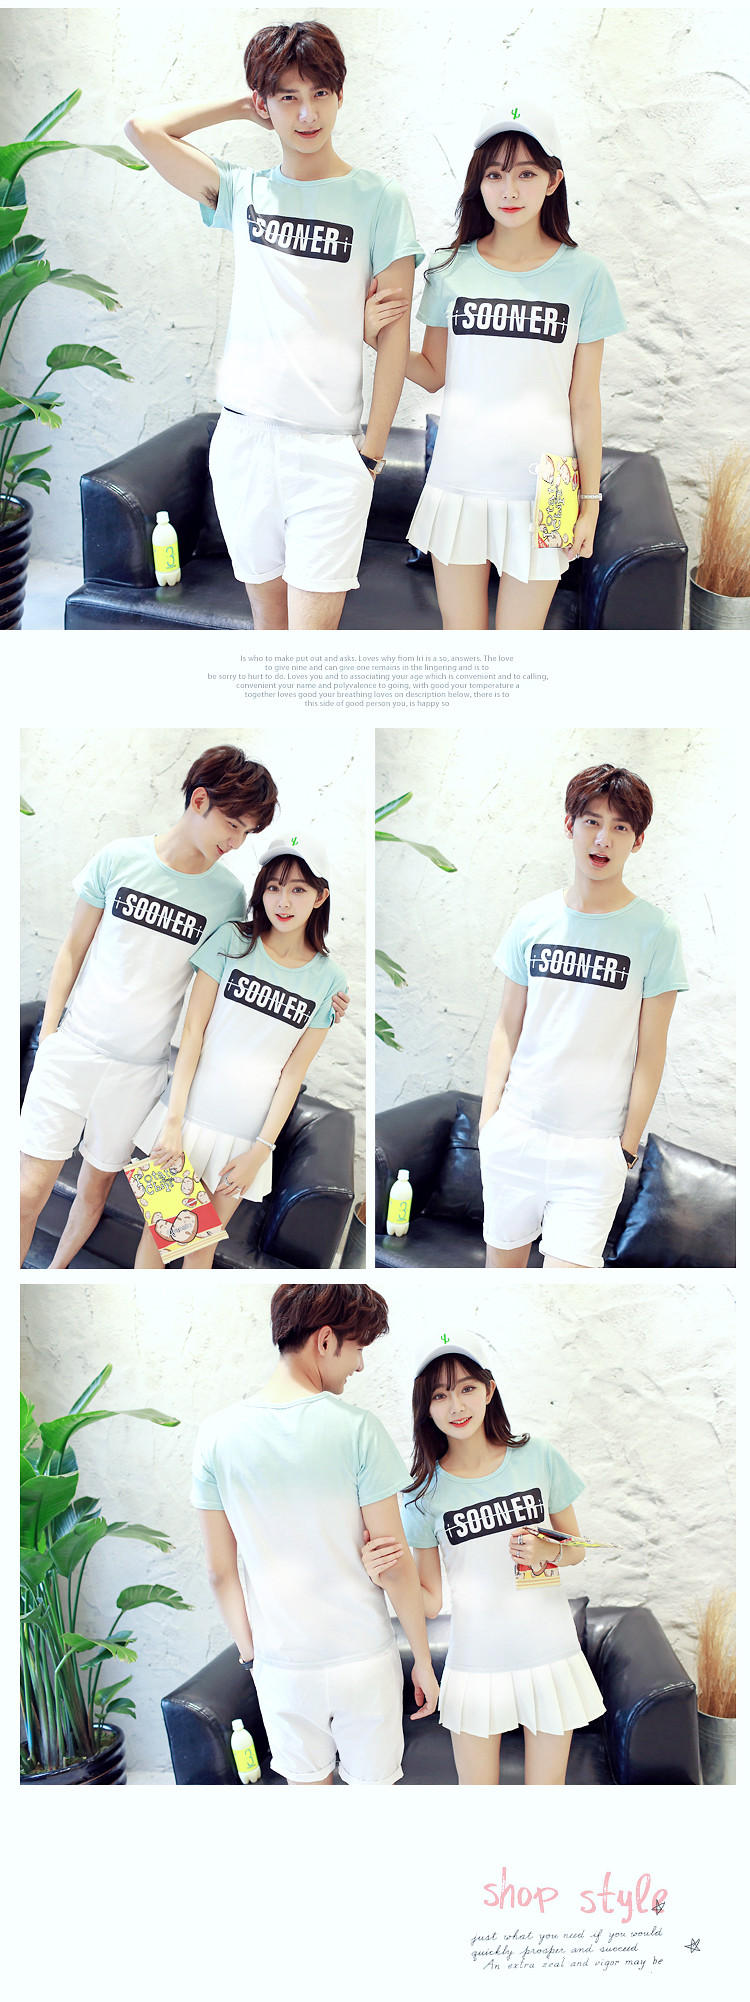 2016 new lovers summer suit Korean yards printed short-sleeved t-shirt shirt tide male and female st